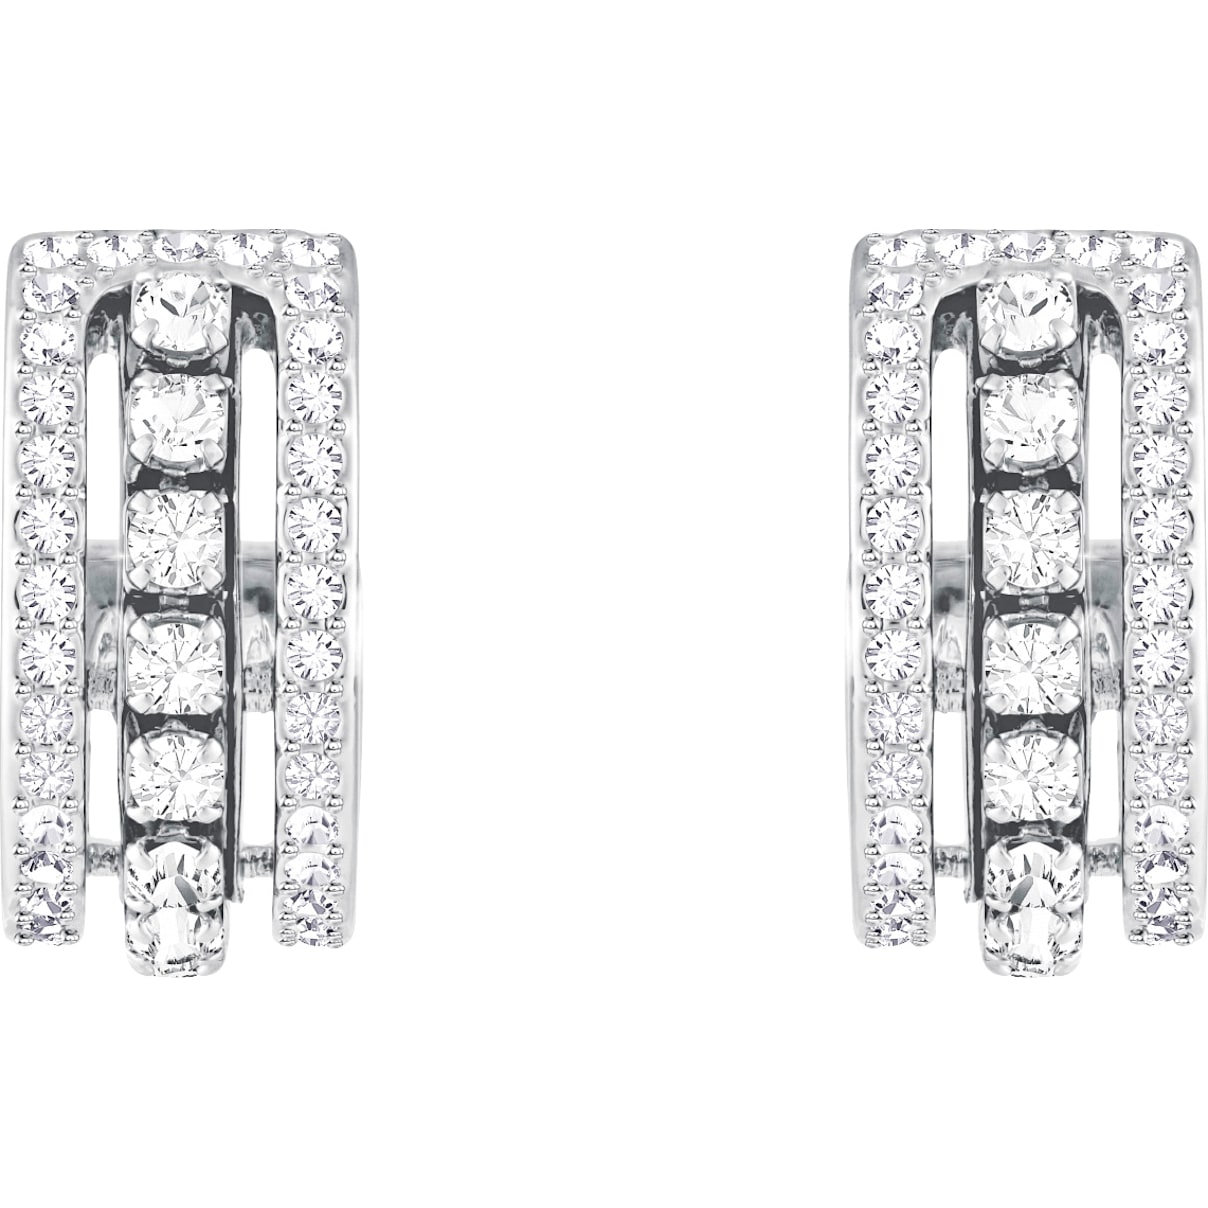 Swarovski Further Pierced Earrings, White, Rhodium plated